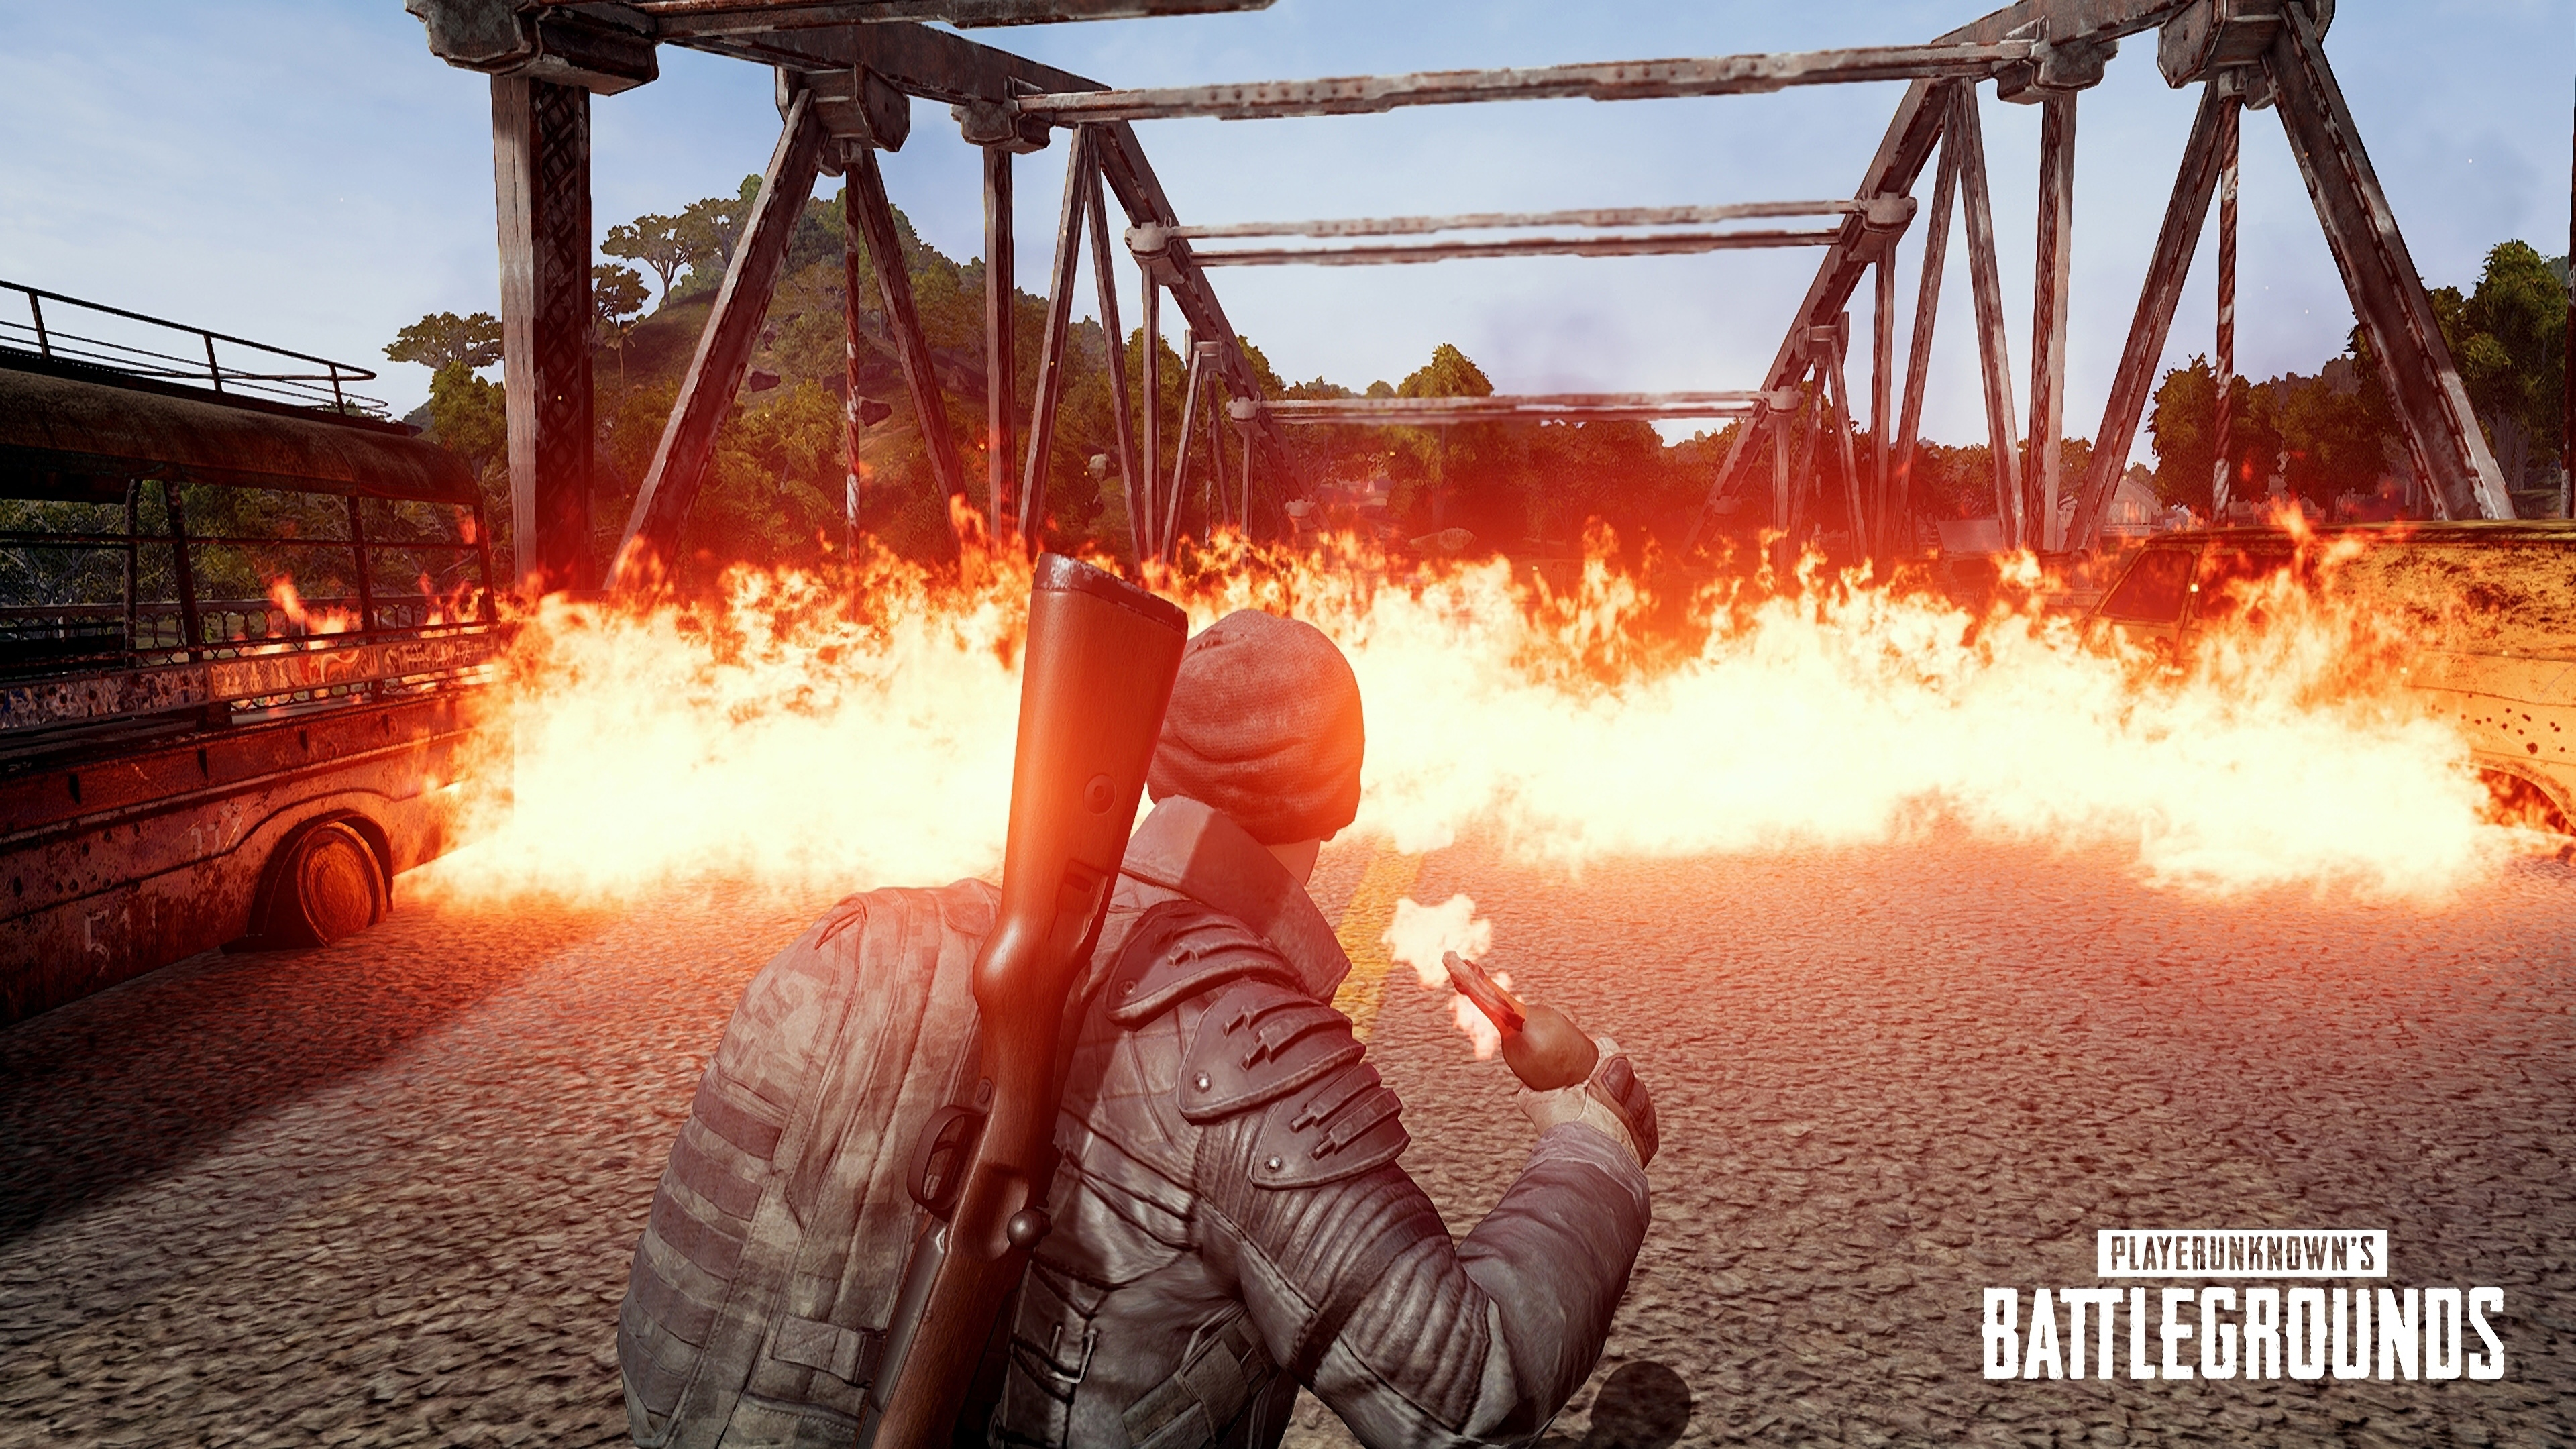 PUBG Molotov Cocktail PlayerUnknownu0027s Battlegrounds 4K Wallpaper